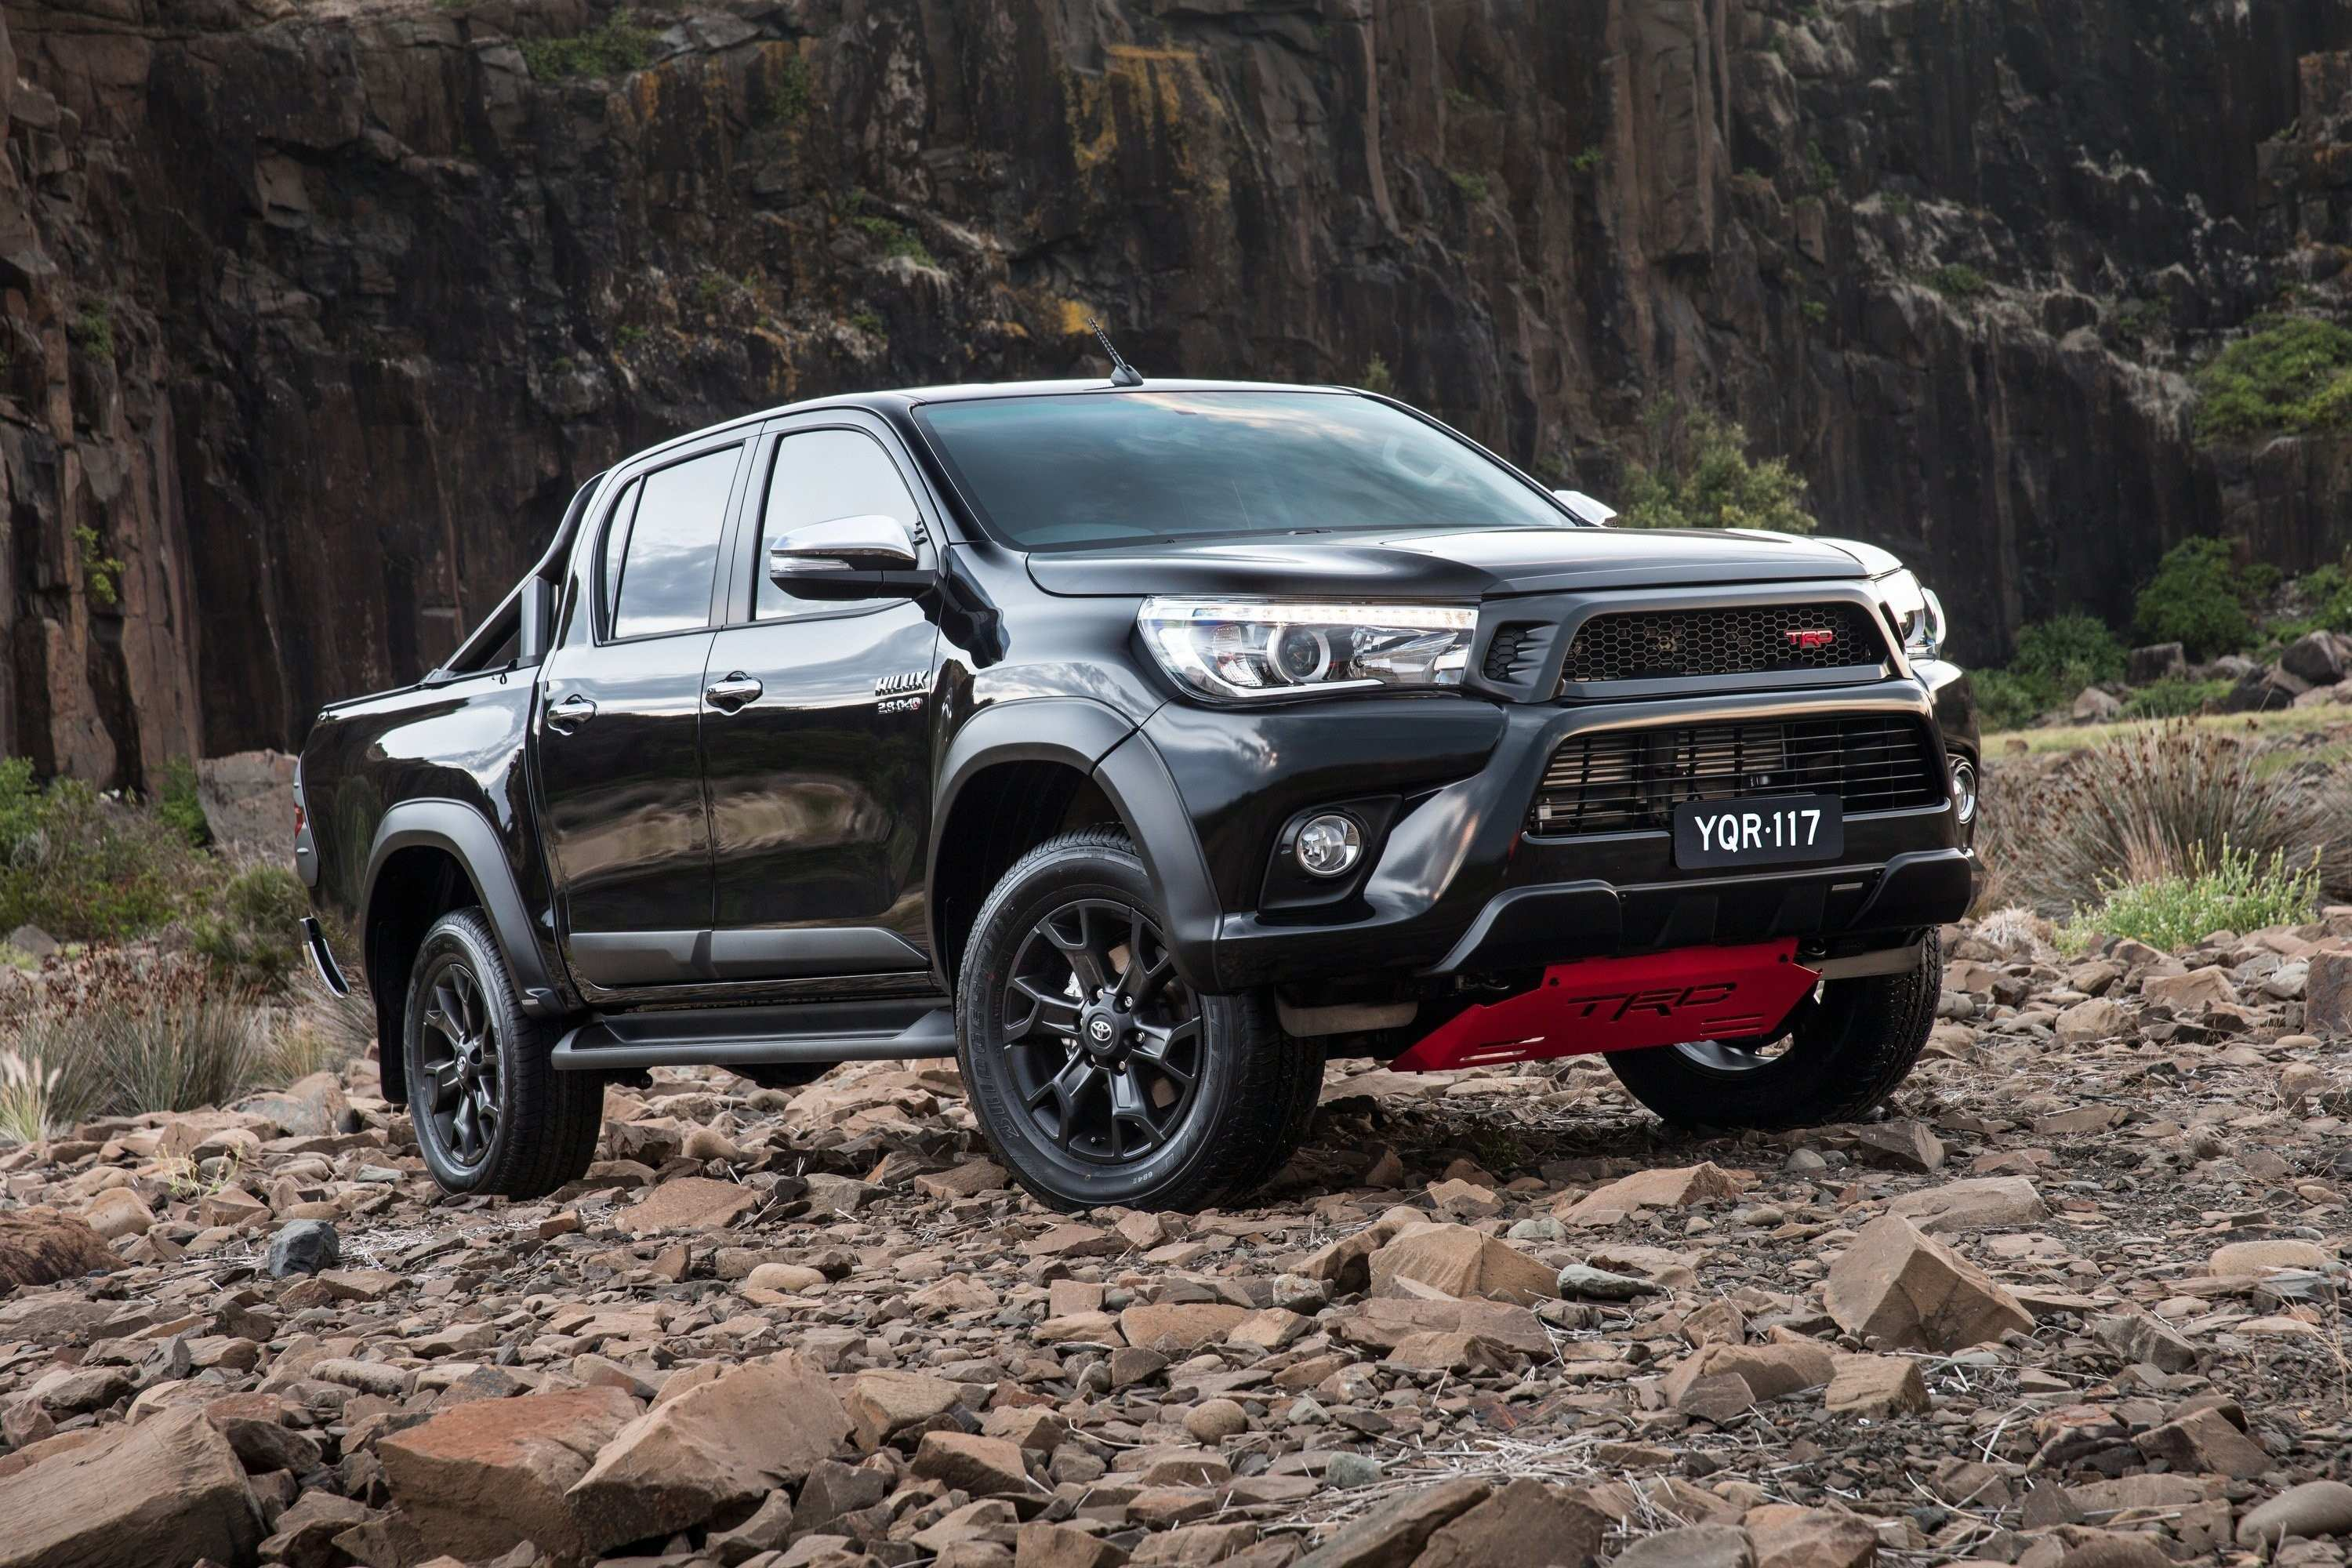 70 Best Review 2019 Toyota Bakkie Overview for 2019 Toyota Bakkie